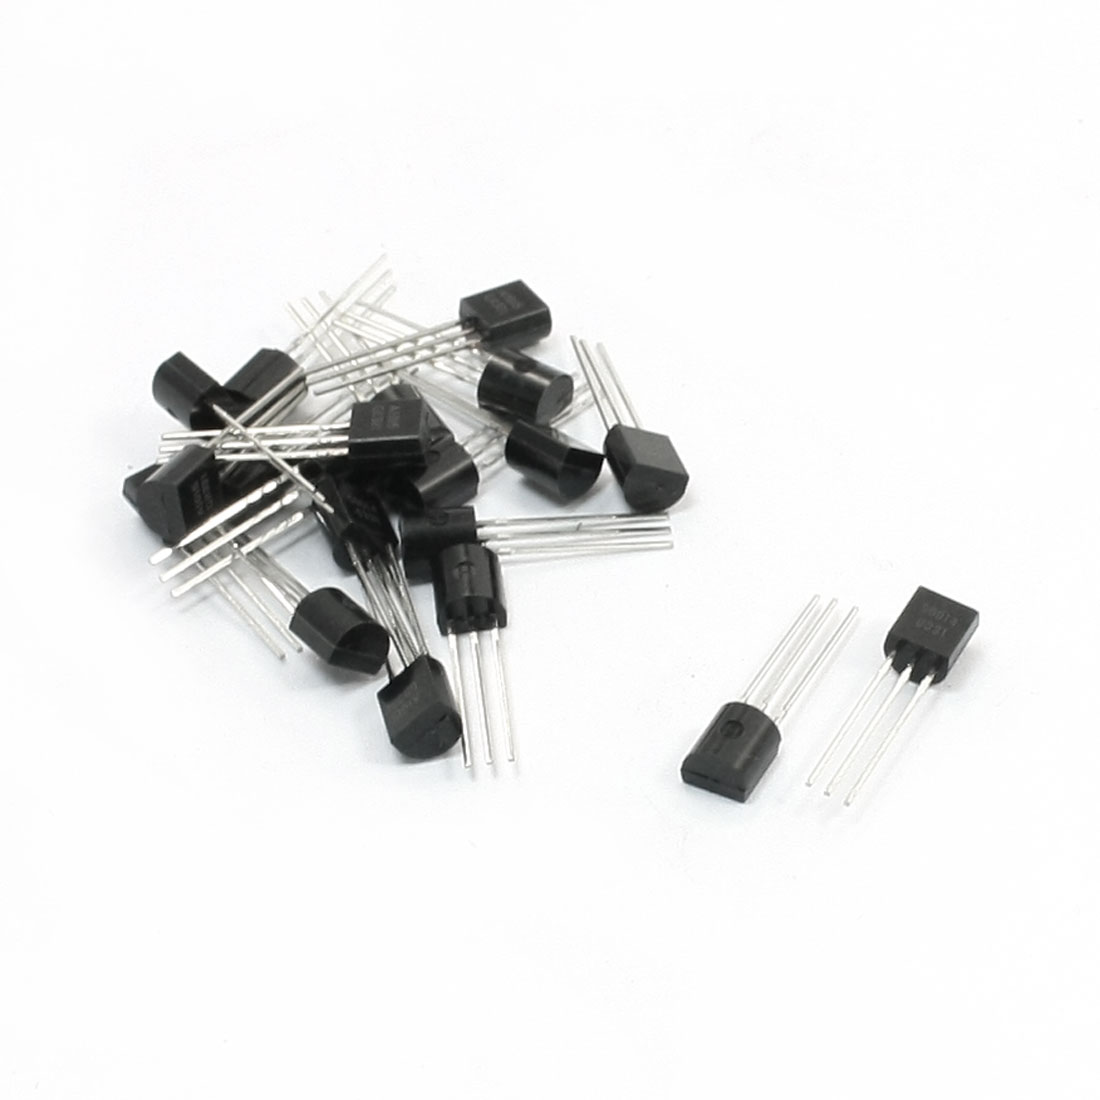 20pcs S9014 NPN A1015 PNP TO-92 Package 3 Pole Through Hole Transistor